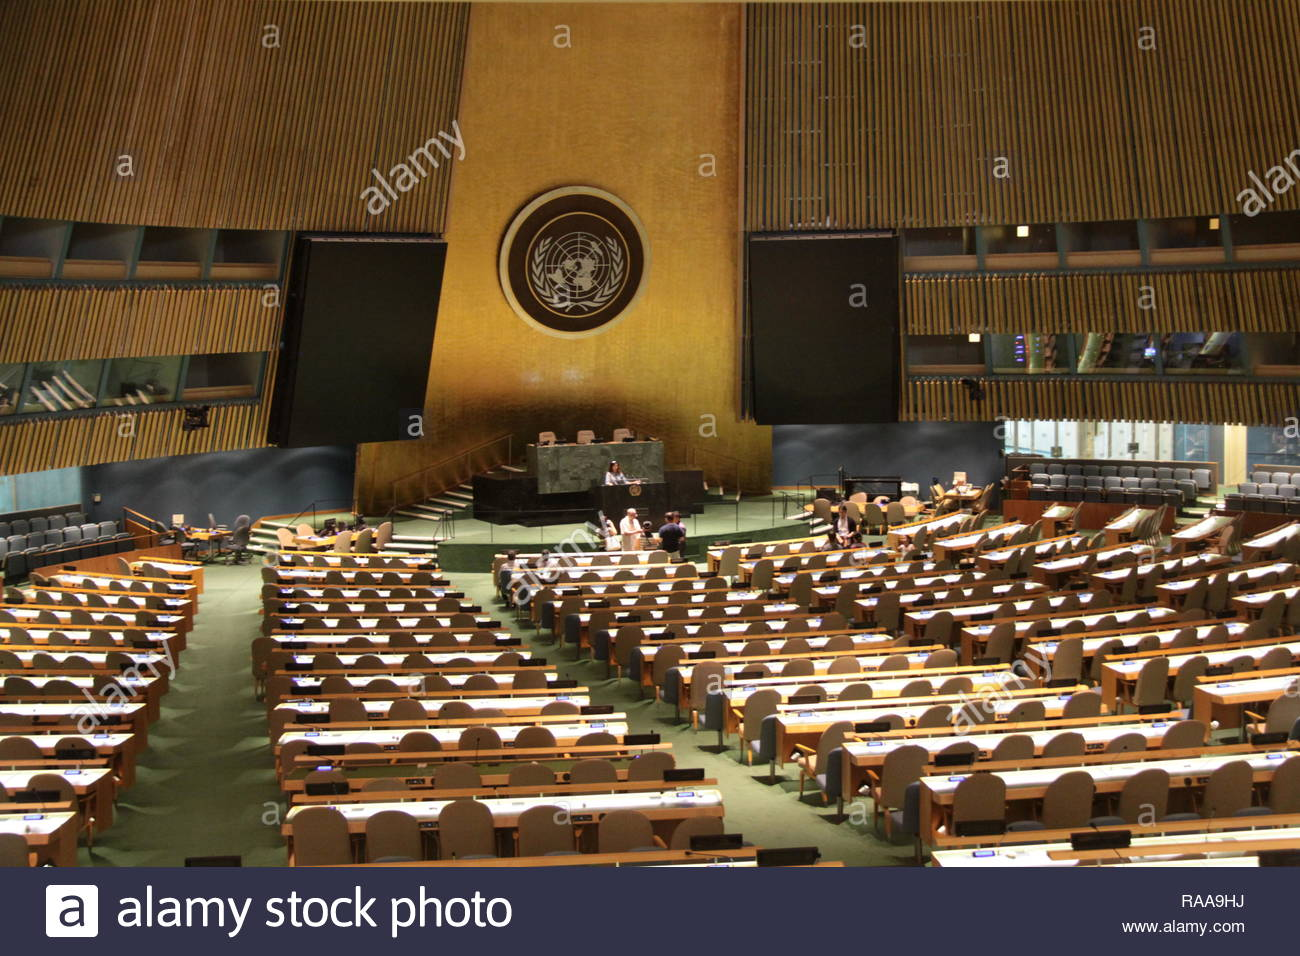 General Assembly Hall, United Nations, New York - Stock Image